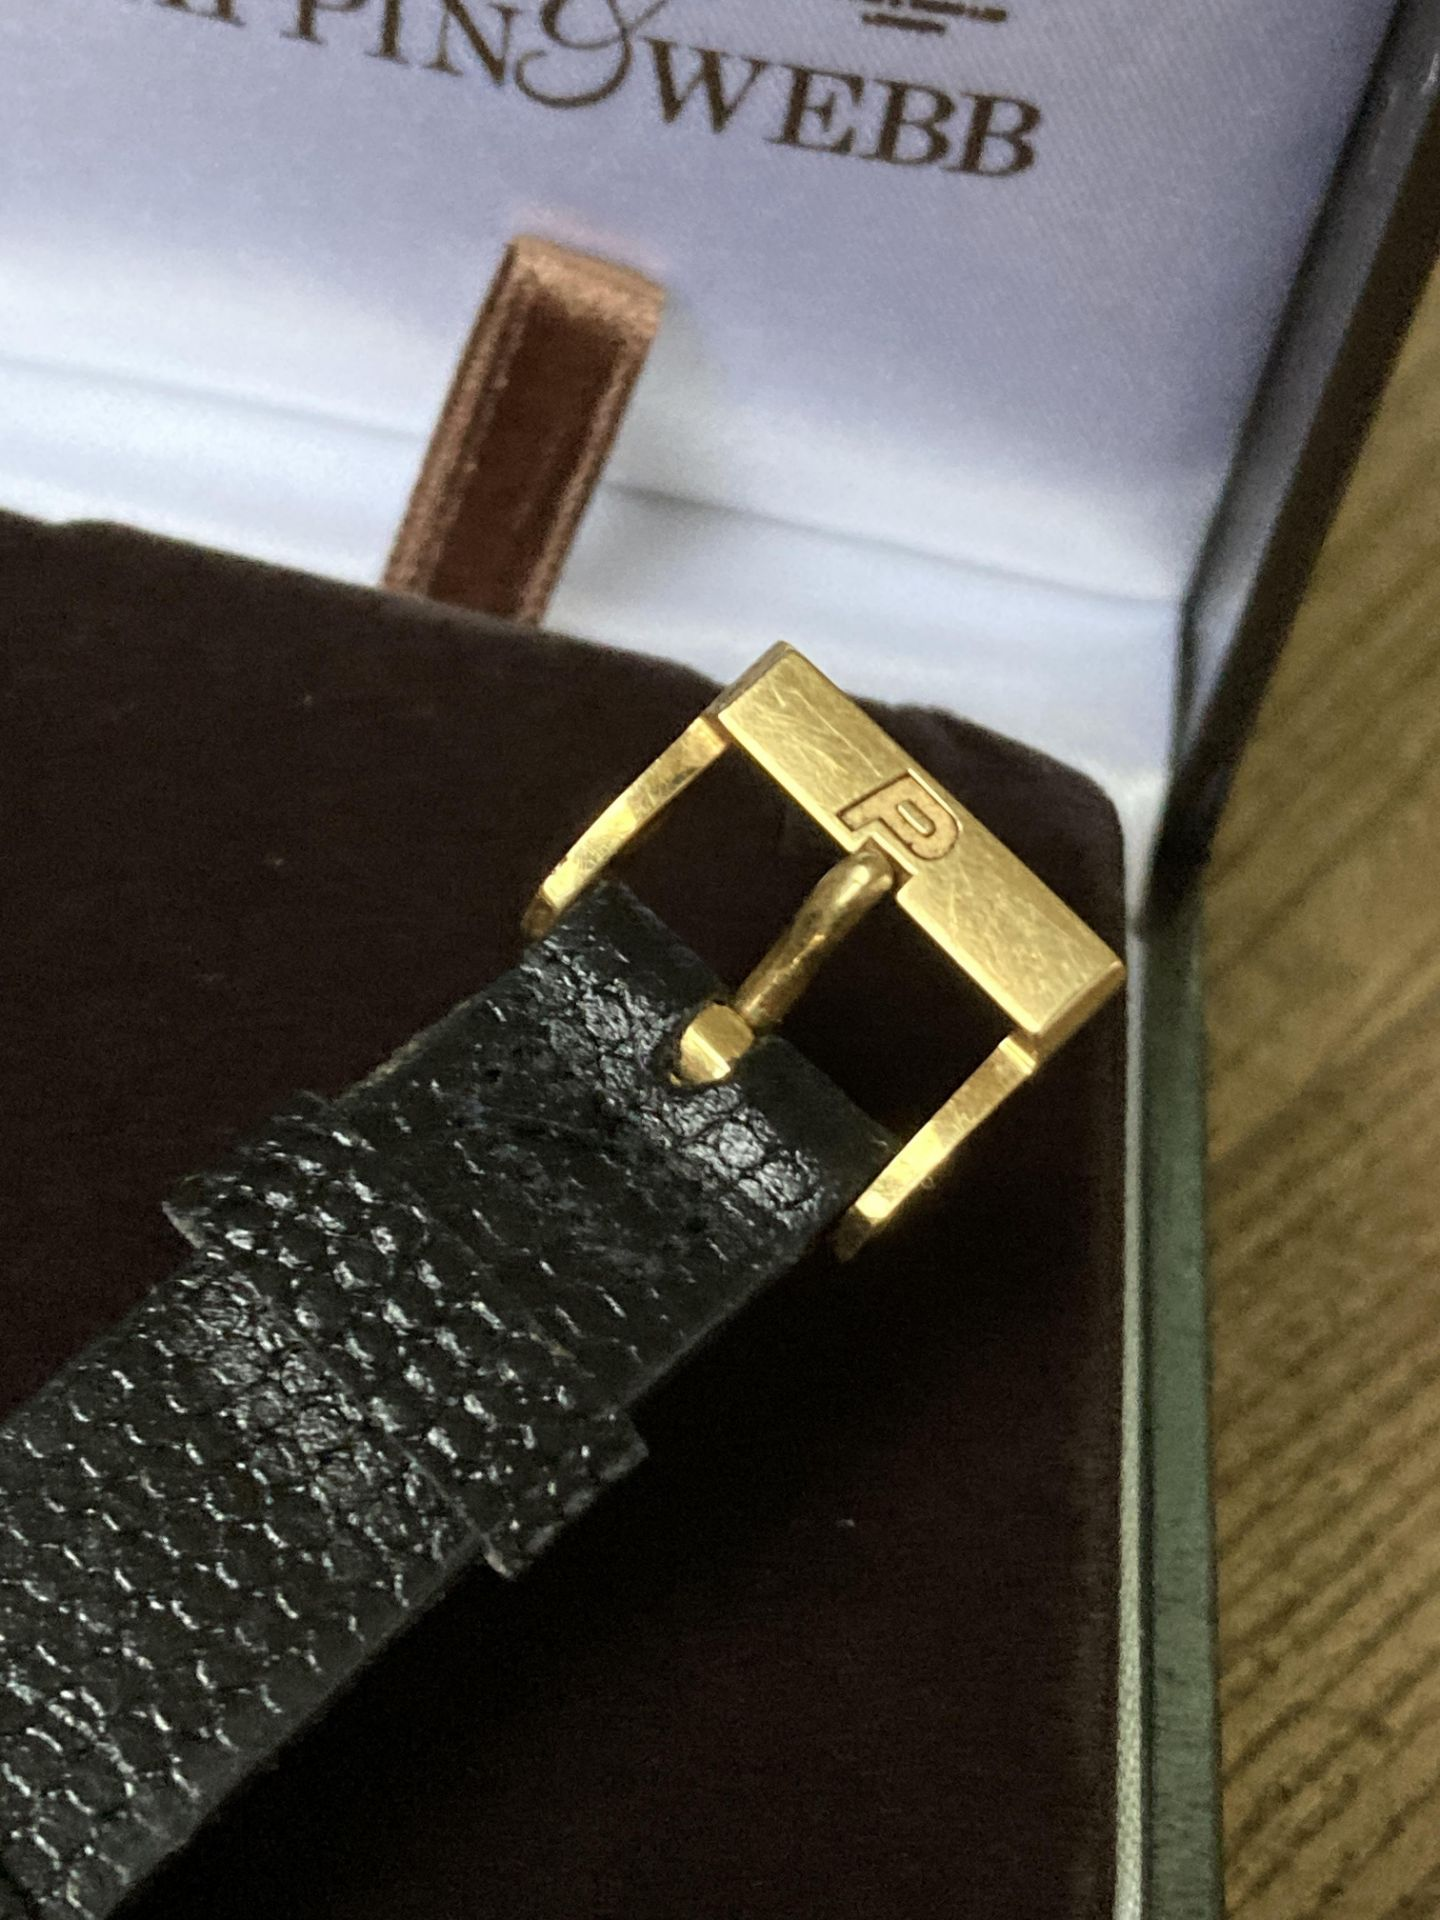 GOLD PIAGET WATCH - 22MM - Image 6 of 6